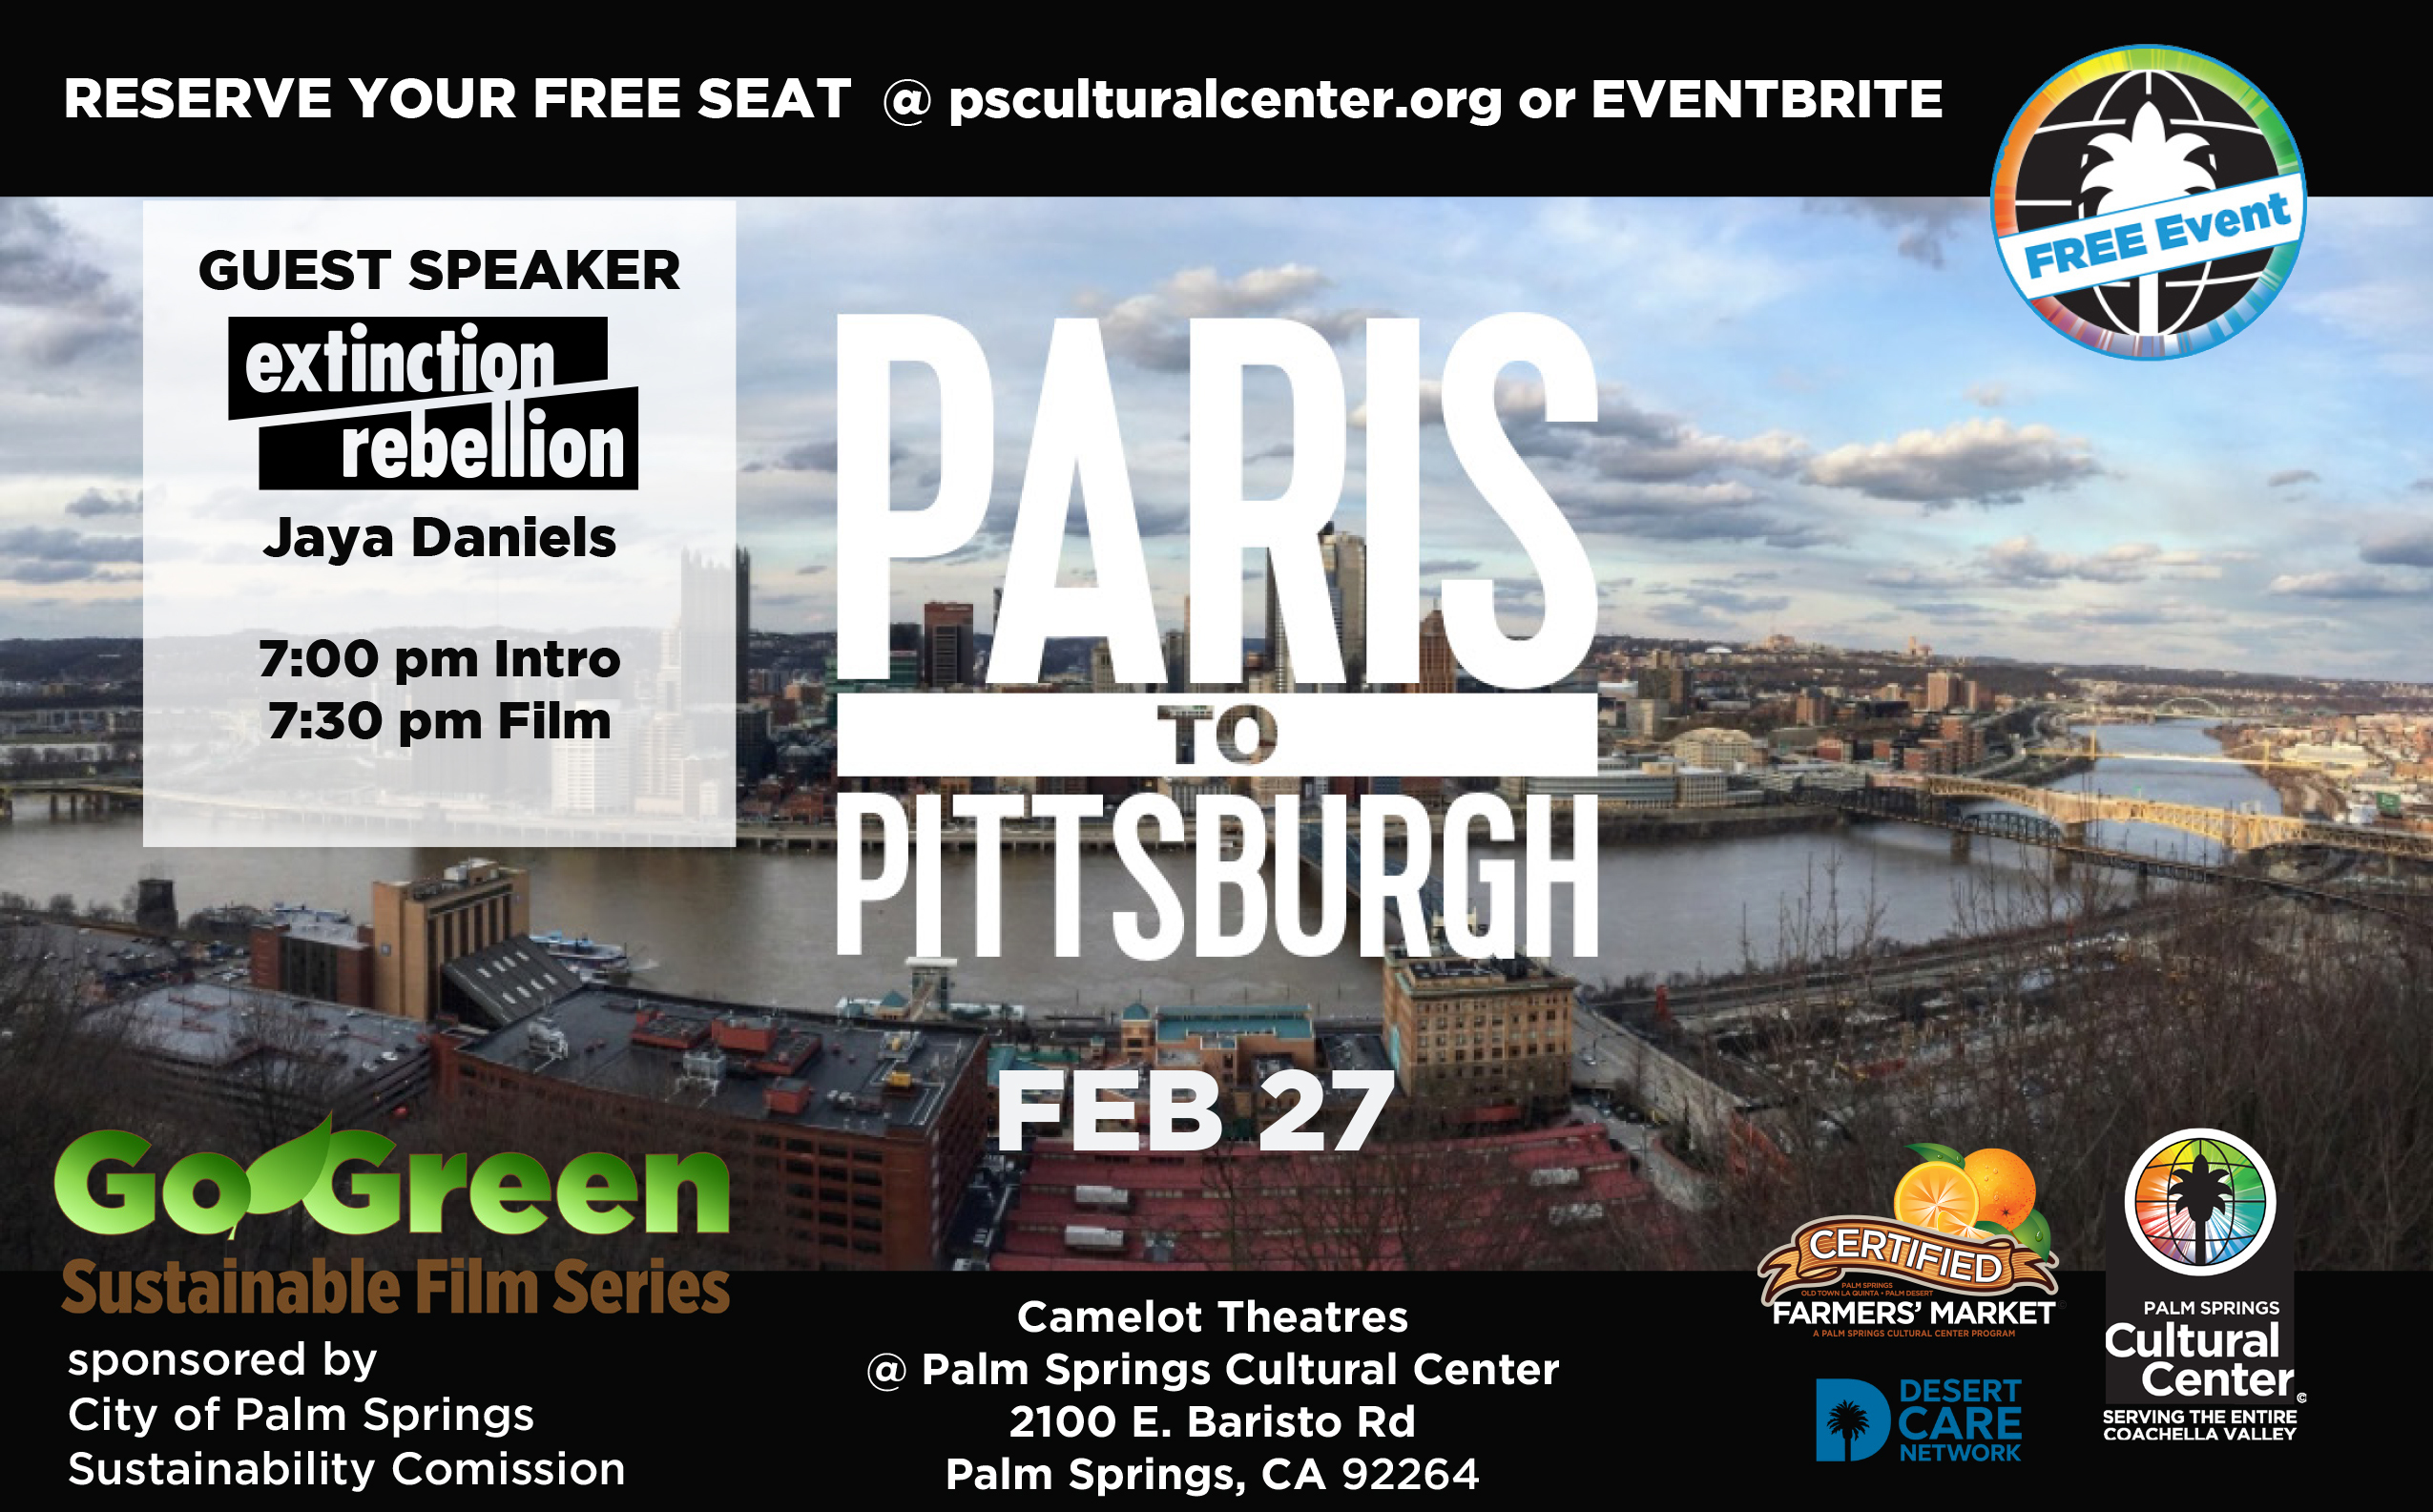 Palm Springs Cultural Center Free Special Community Event: Paris to Pittsburg at the Camelot Theatres in Palm Springs